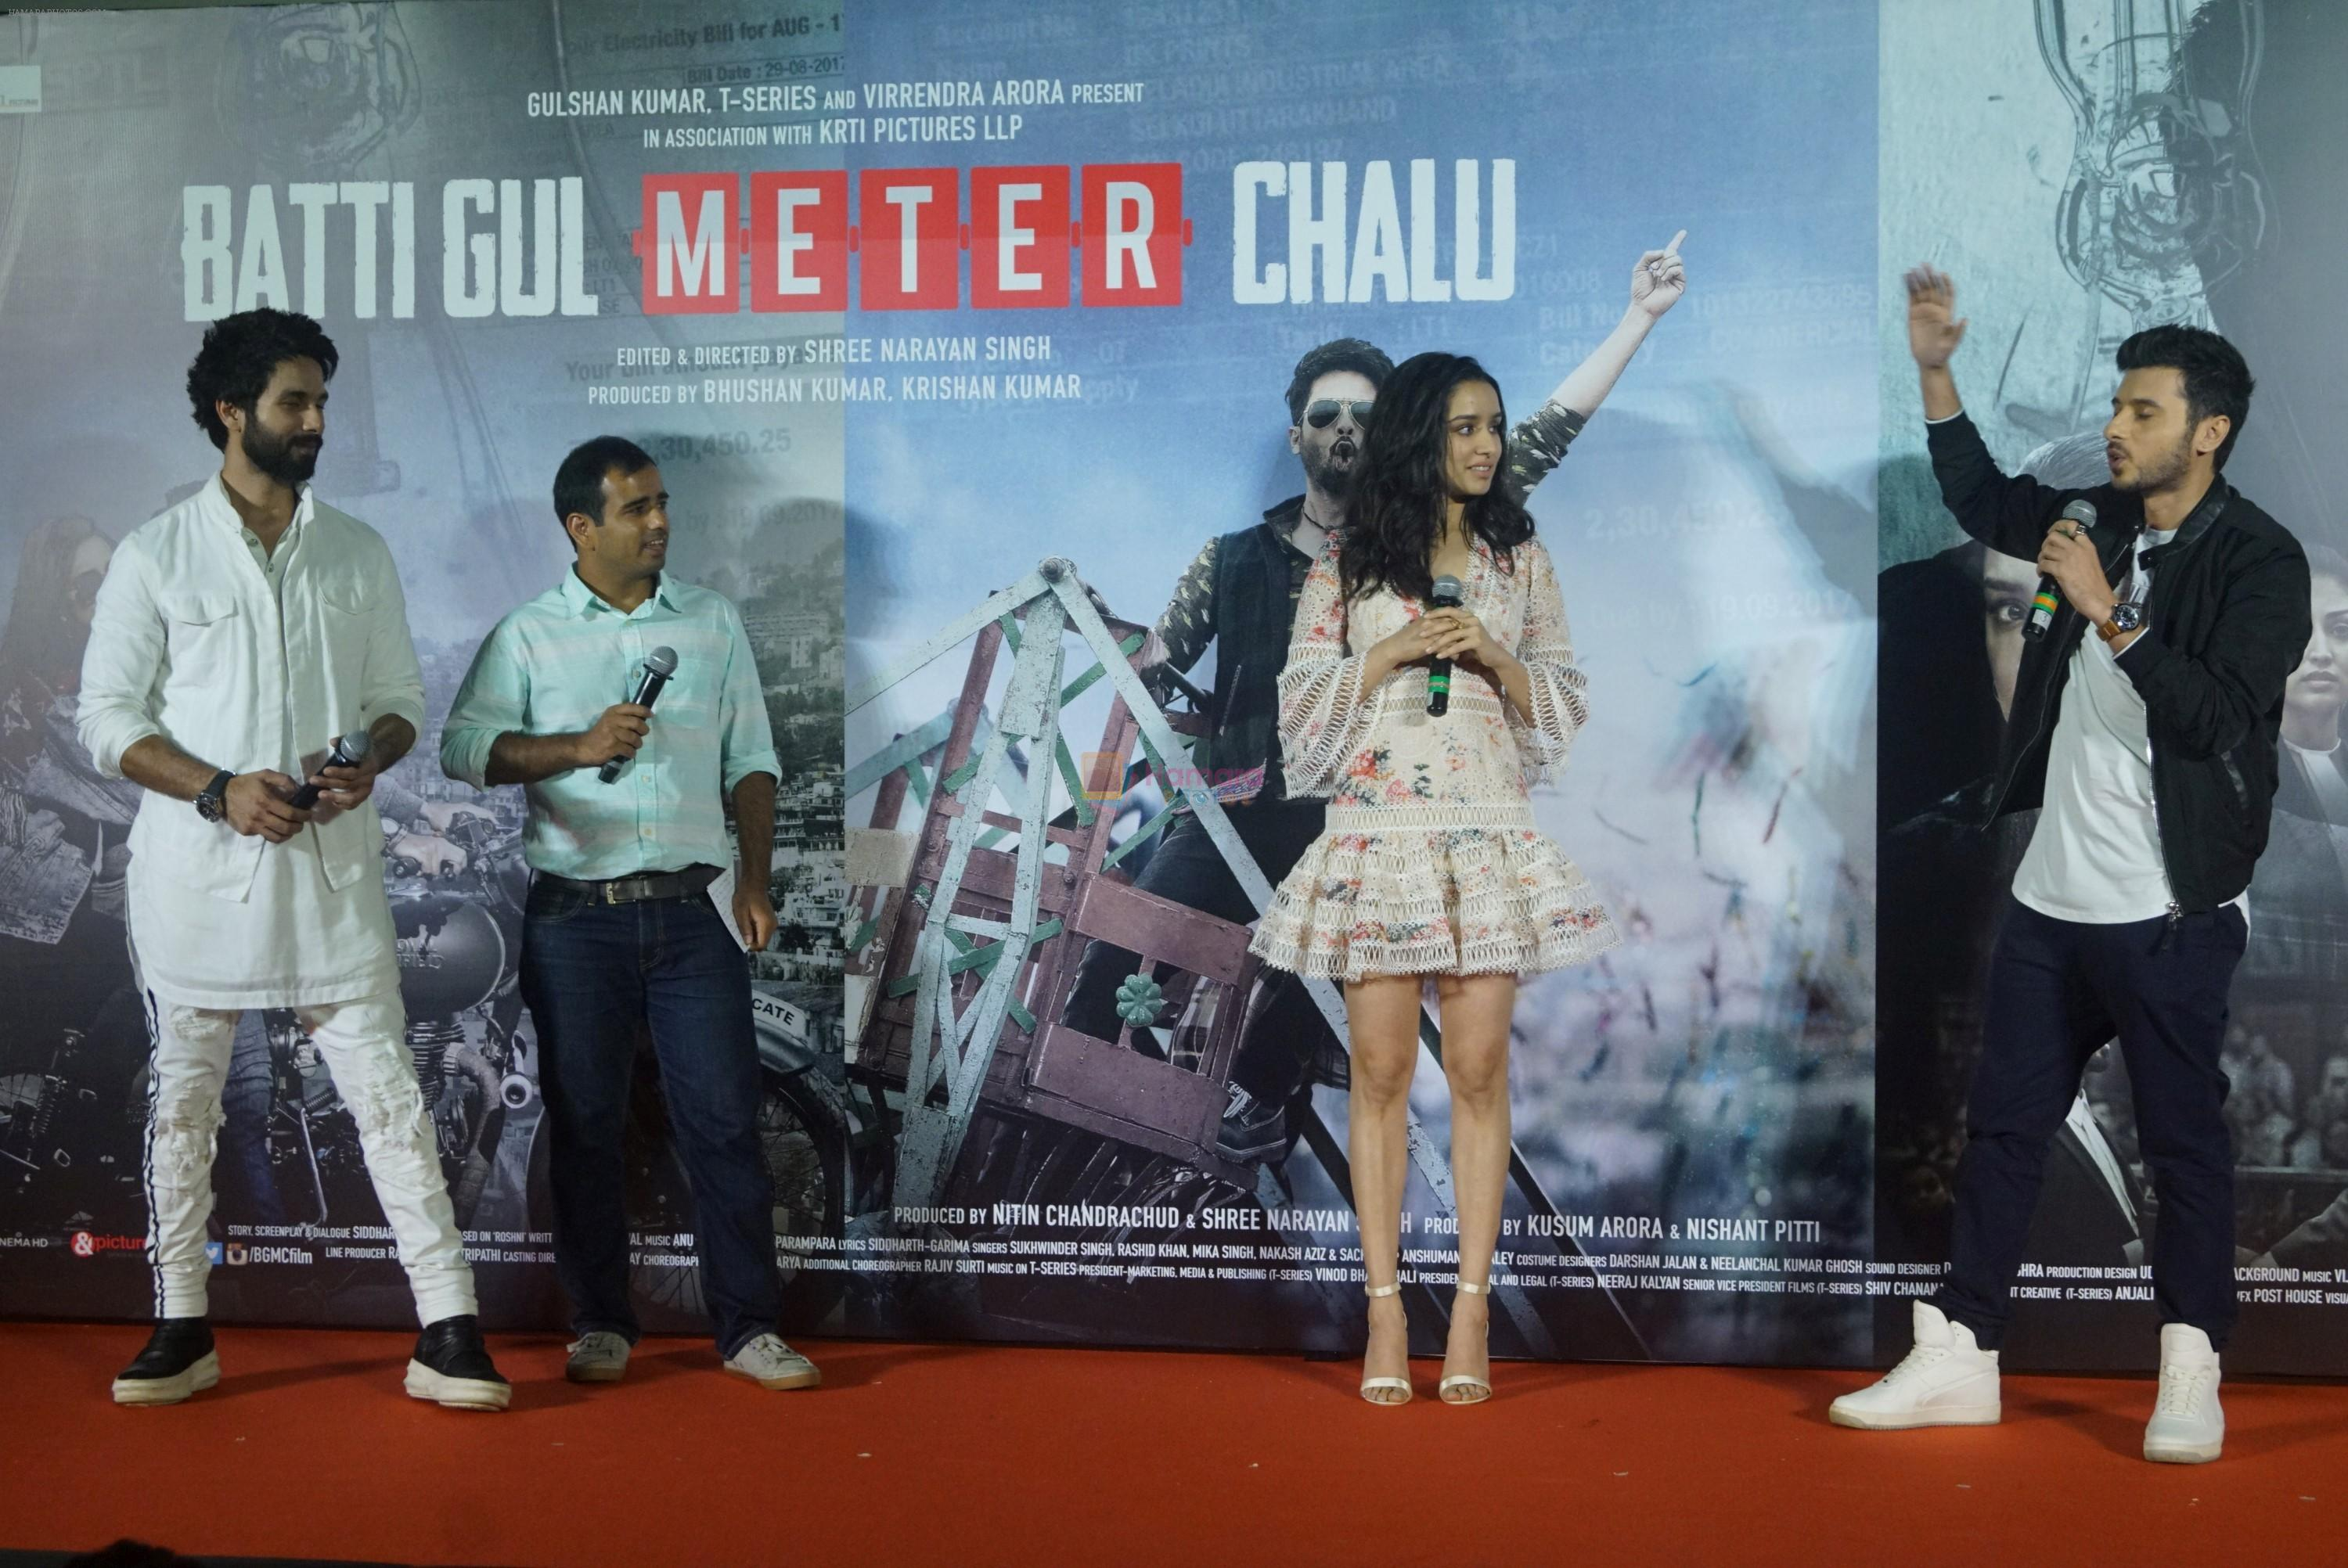 Shraddha Kapoor, Shahid Kapoor,Divyendu Sharma at the trailer launch of film Batti Gul Meter Chalu on 10th Aug 2018